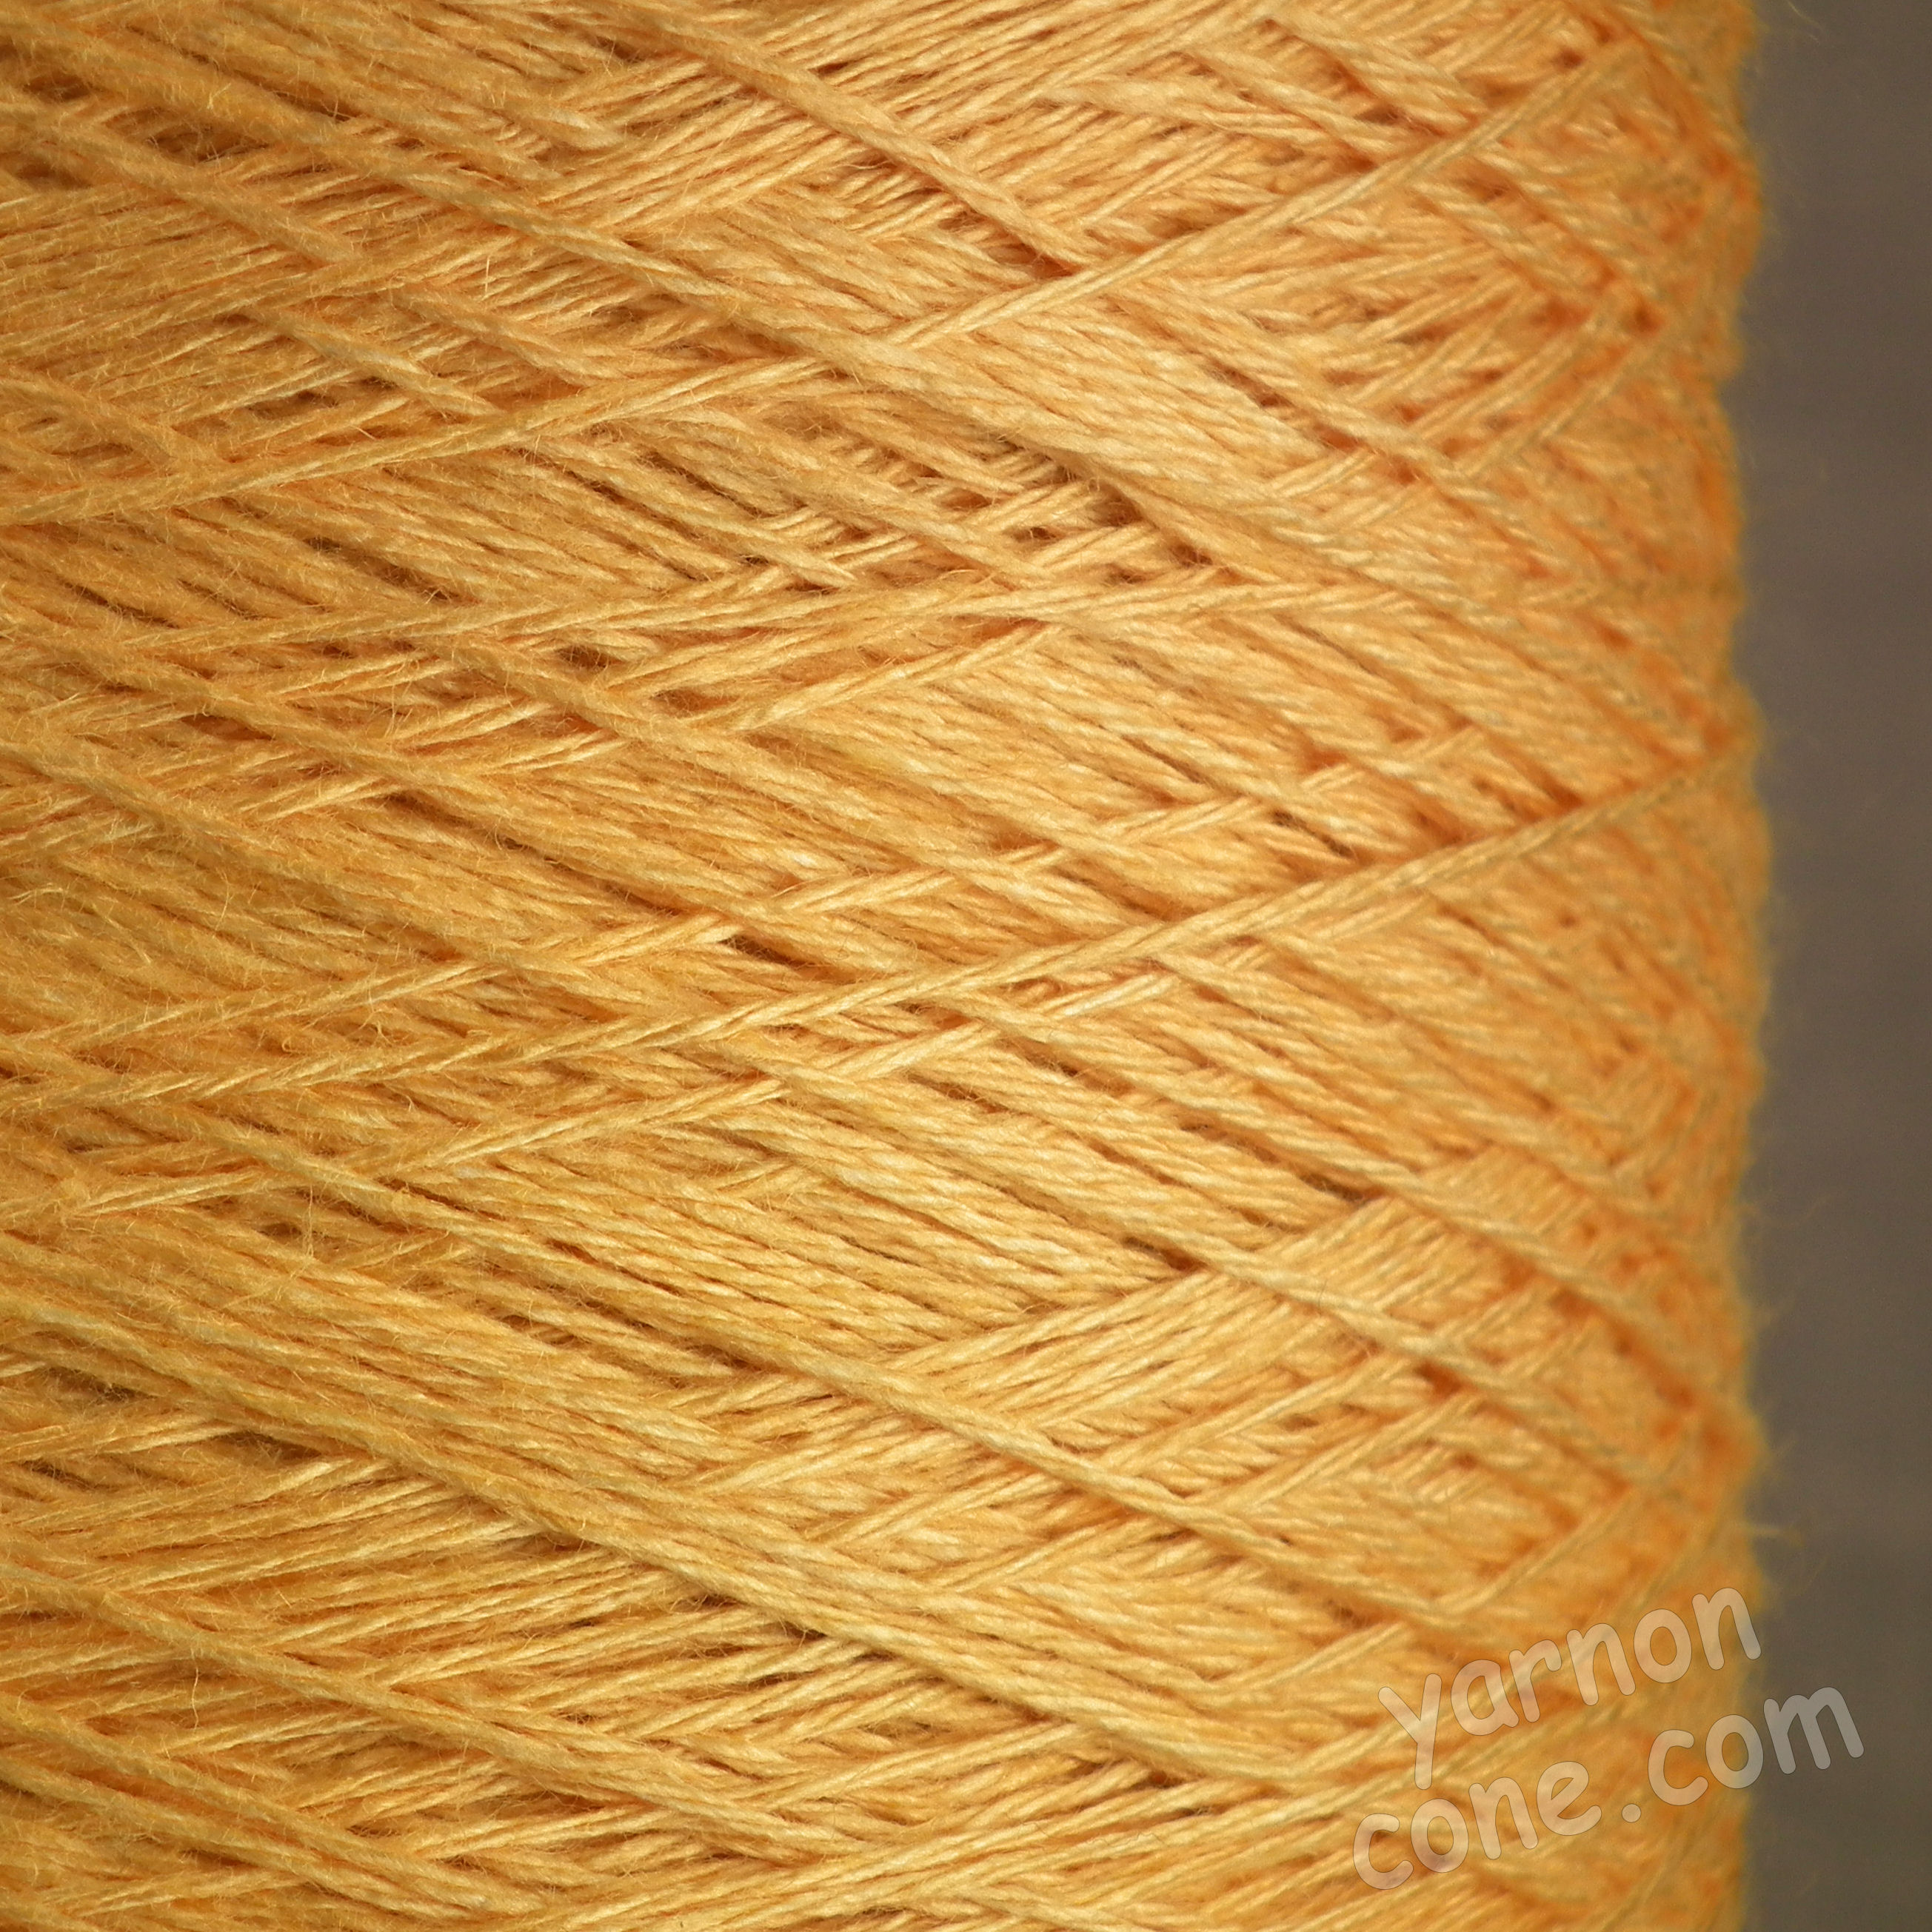 soft 4 ply viscose linen yarn on cone knitting weaving crochet apricot